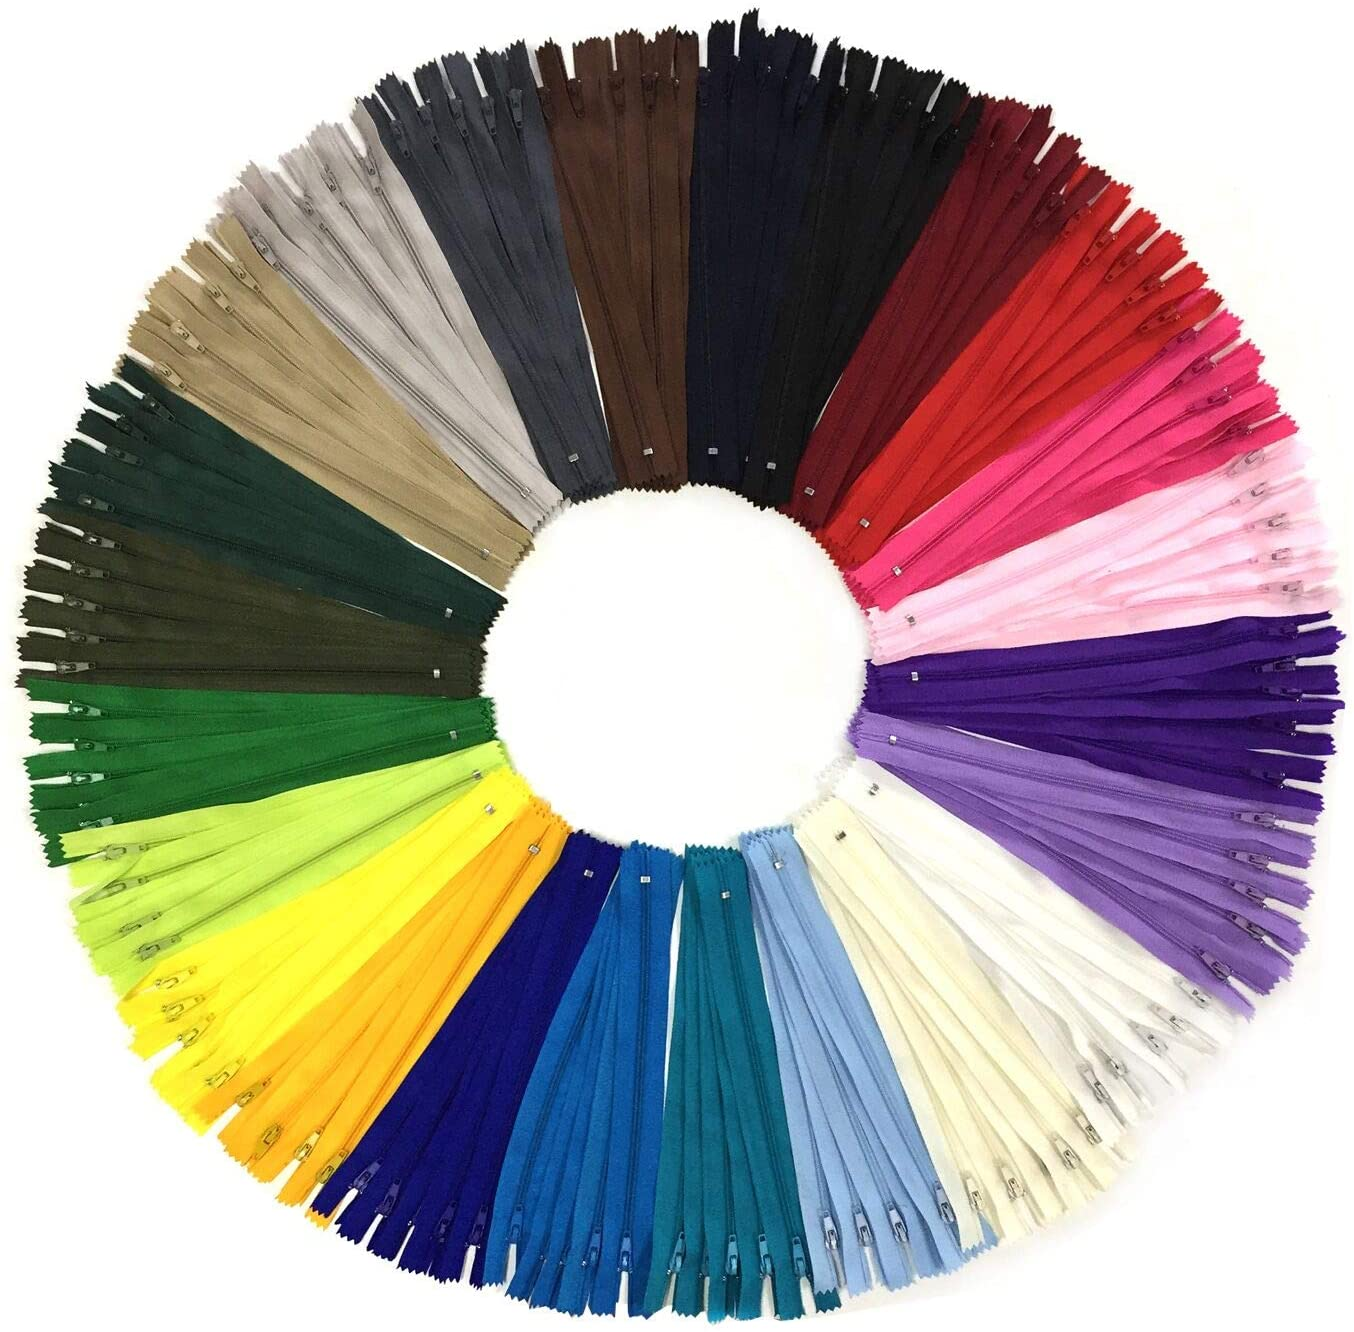 Wartoon 120pcs 23cm/9 Inch Multicolor Nylon Coil Zippers for Sewing and Crafts 24 Colors